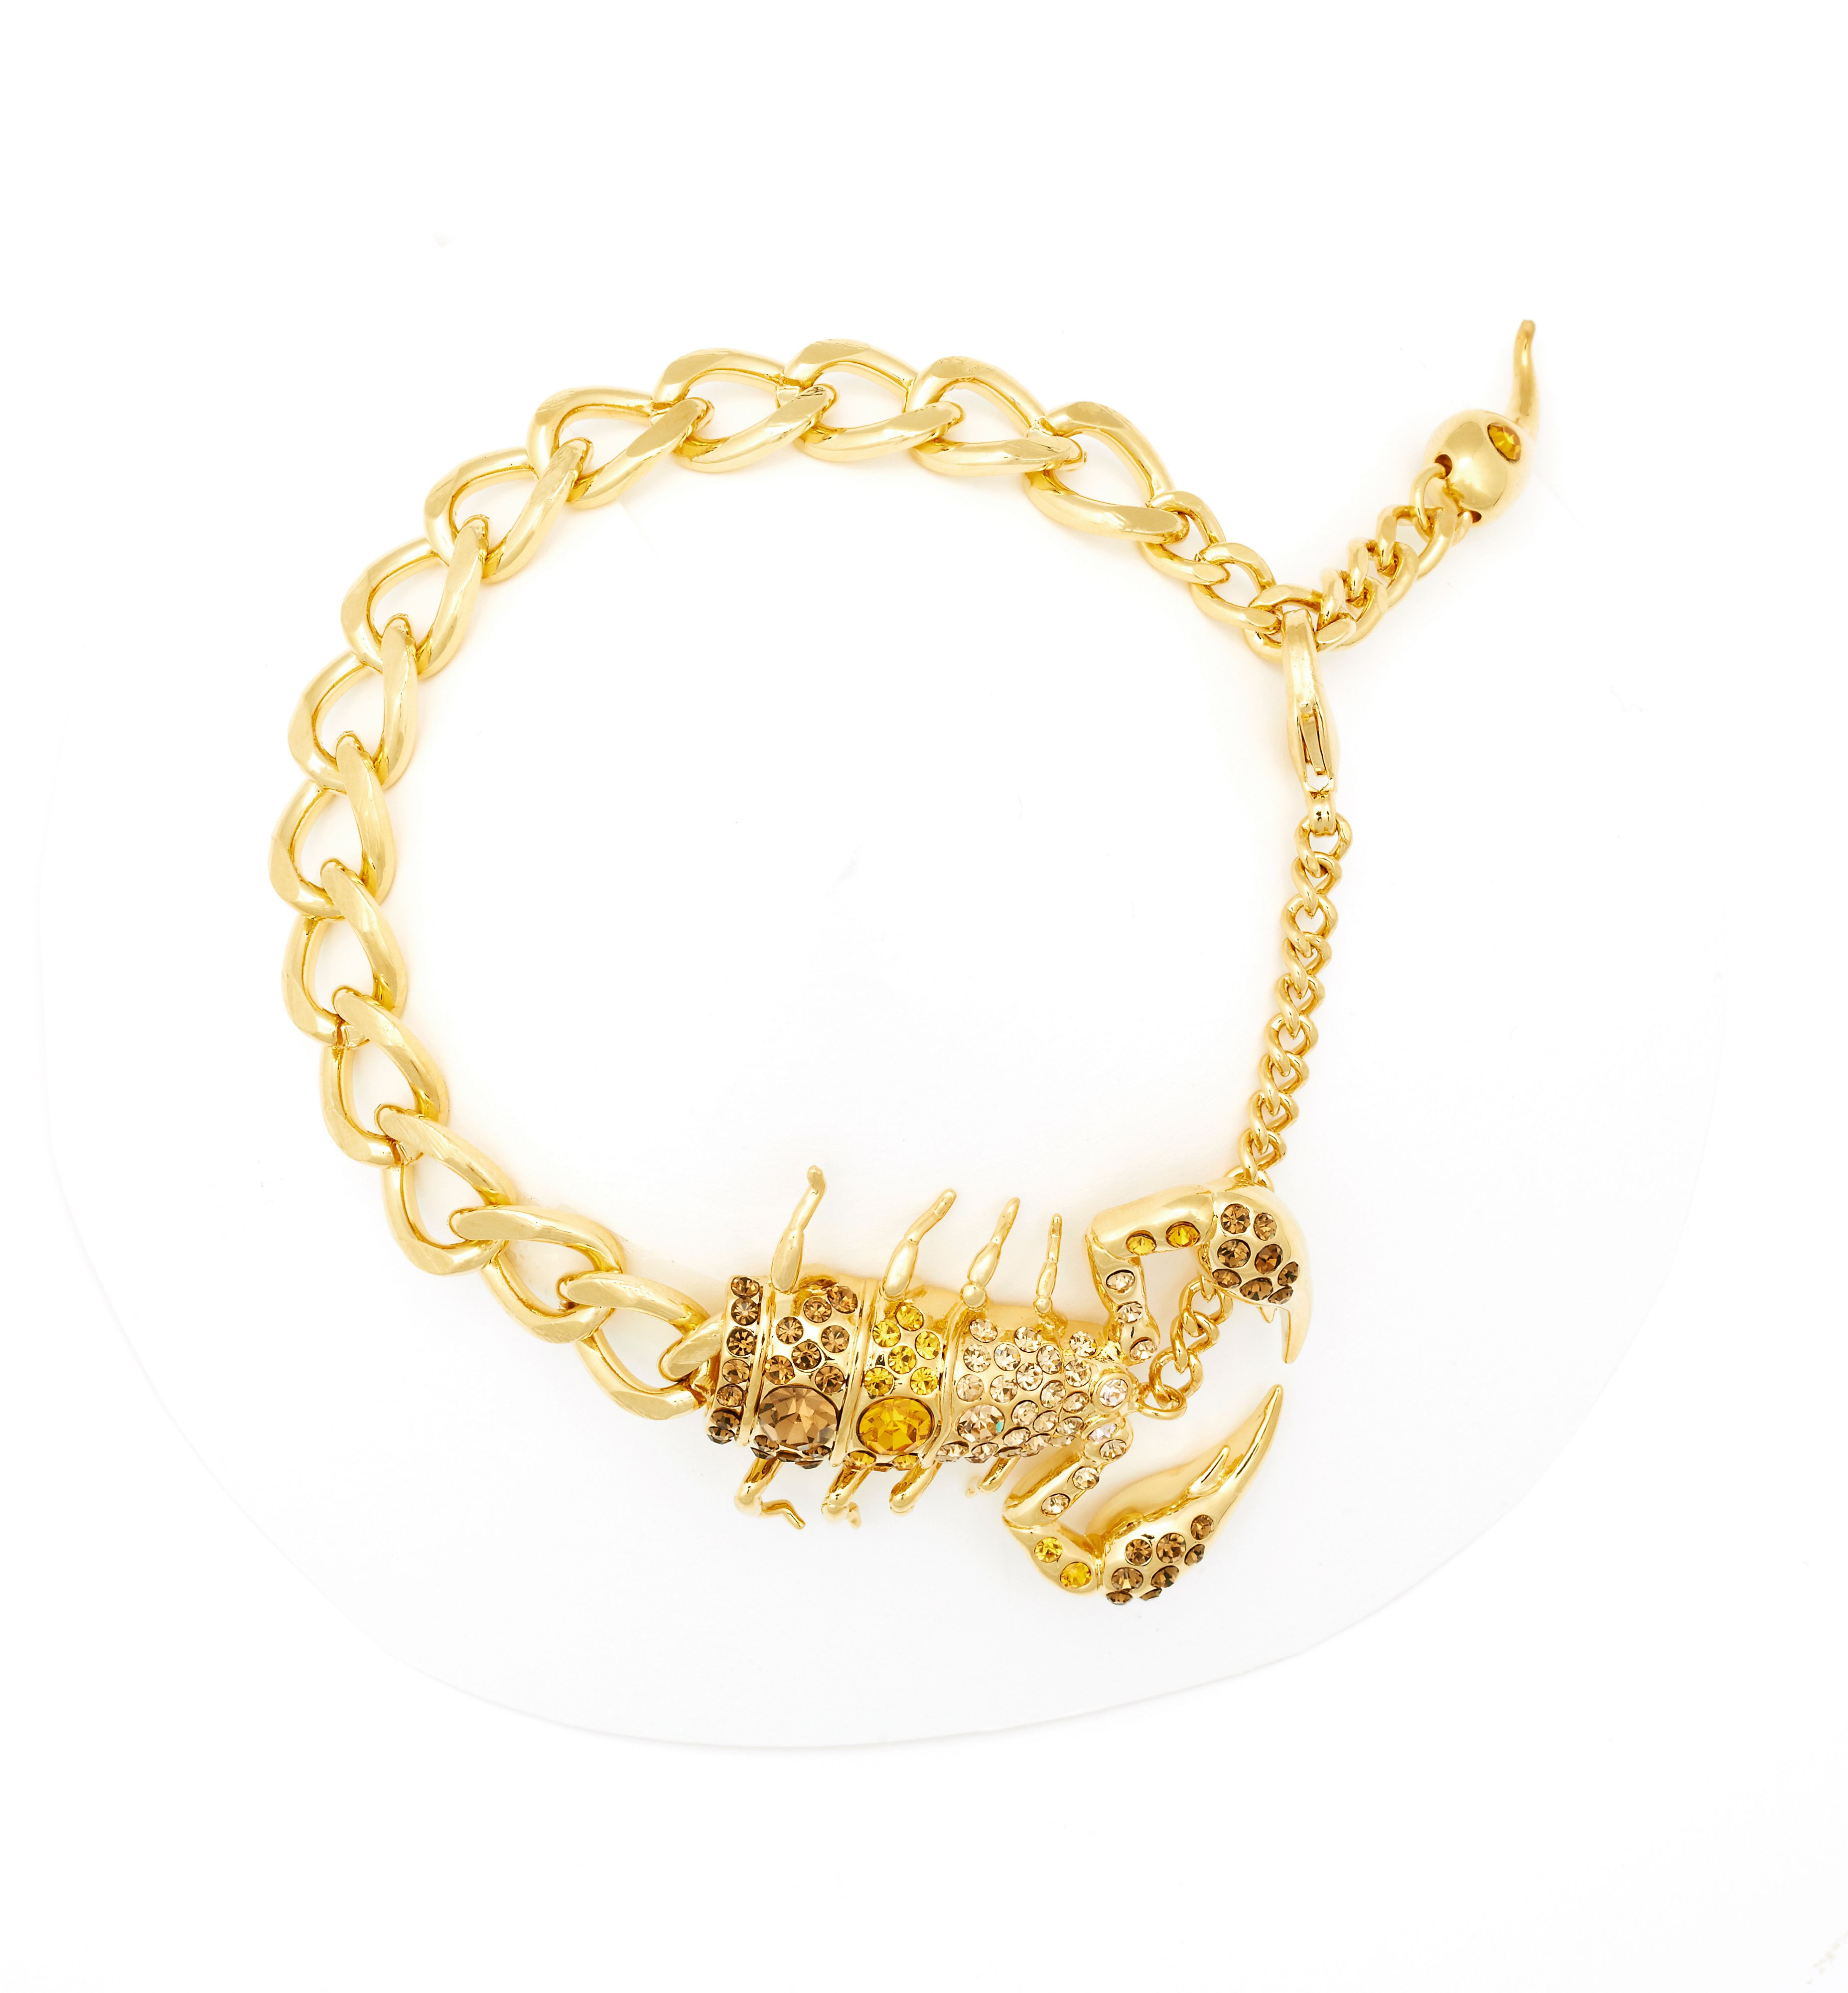 Yellow gold swarovski crystal scorpion bracelet